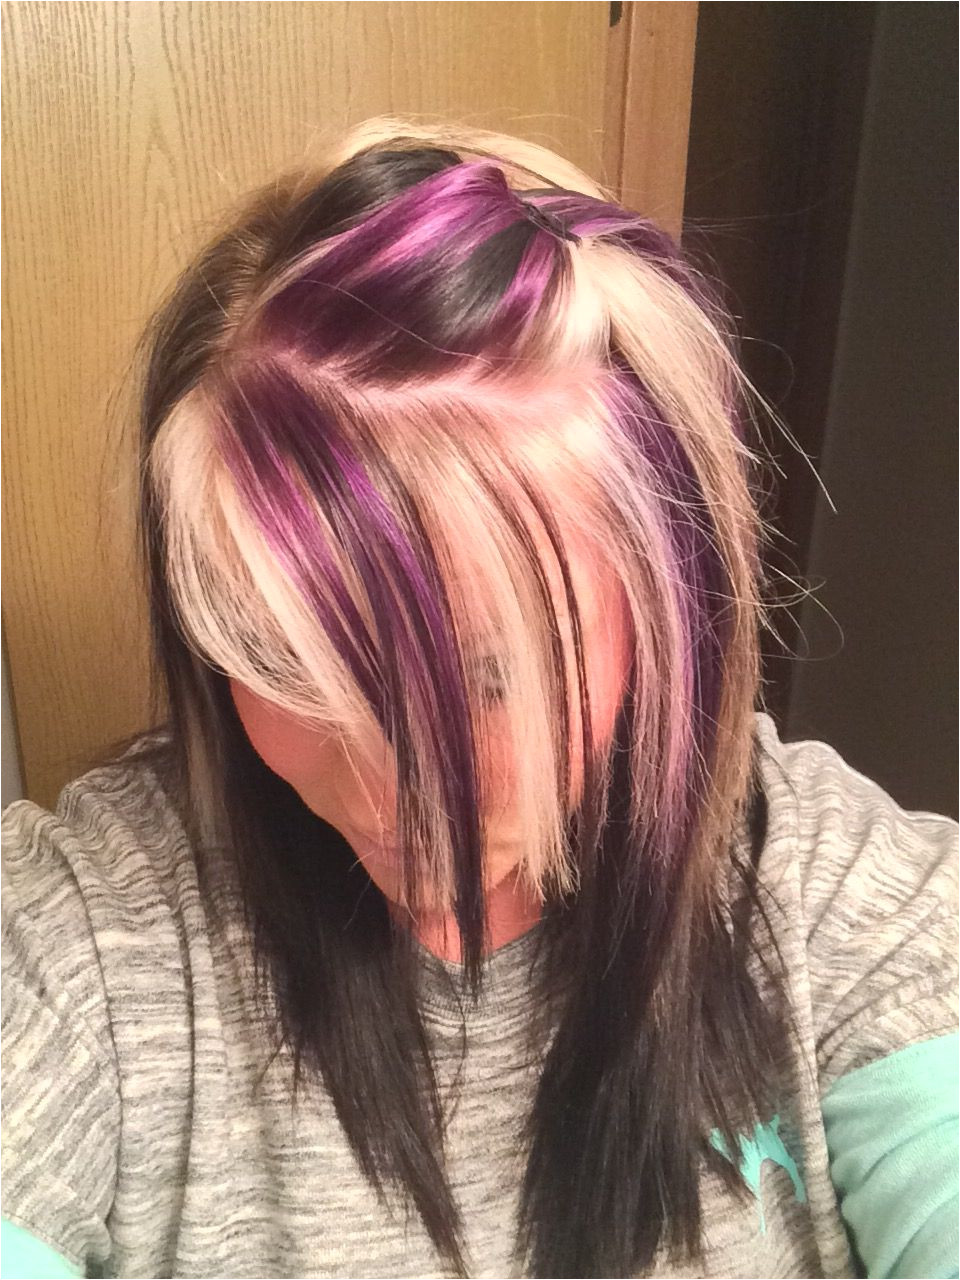 Blonde Hairstyles with Purple Highlights Purple Blonde and Black On top with All Black Underneath